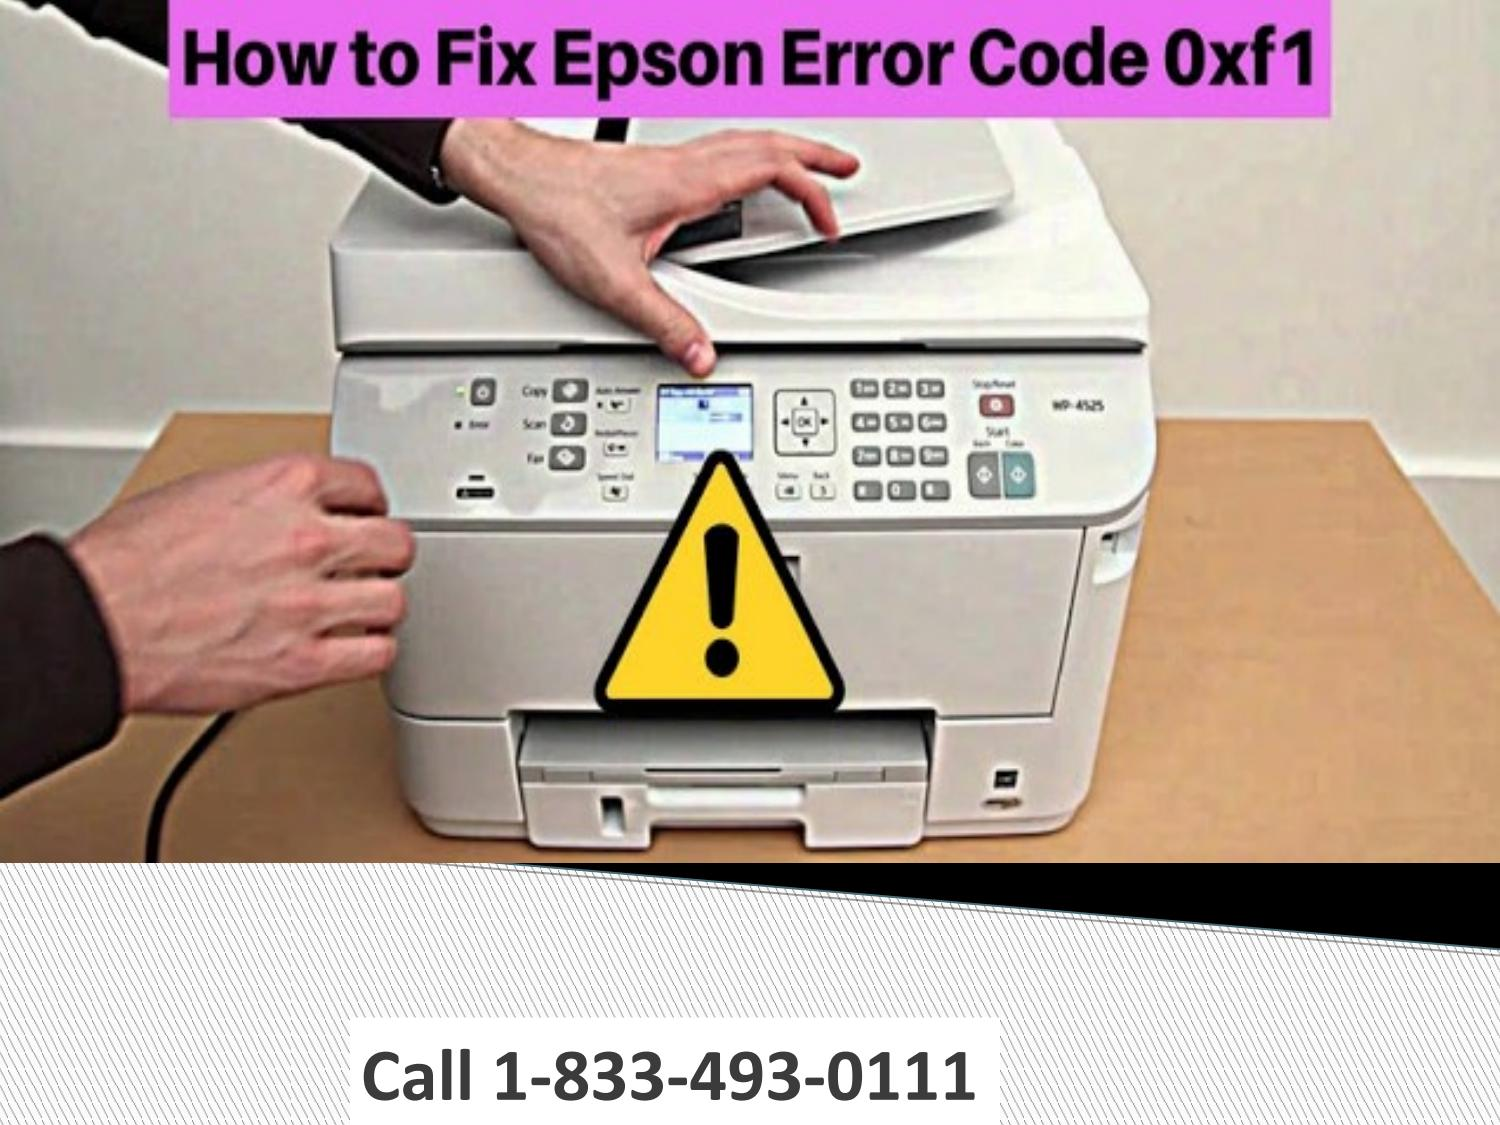 Epson printer error 0xf1